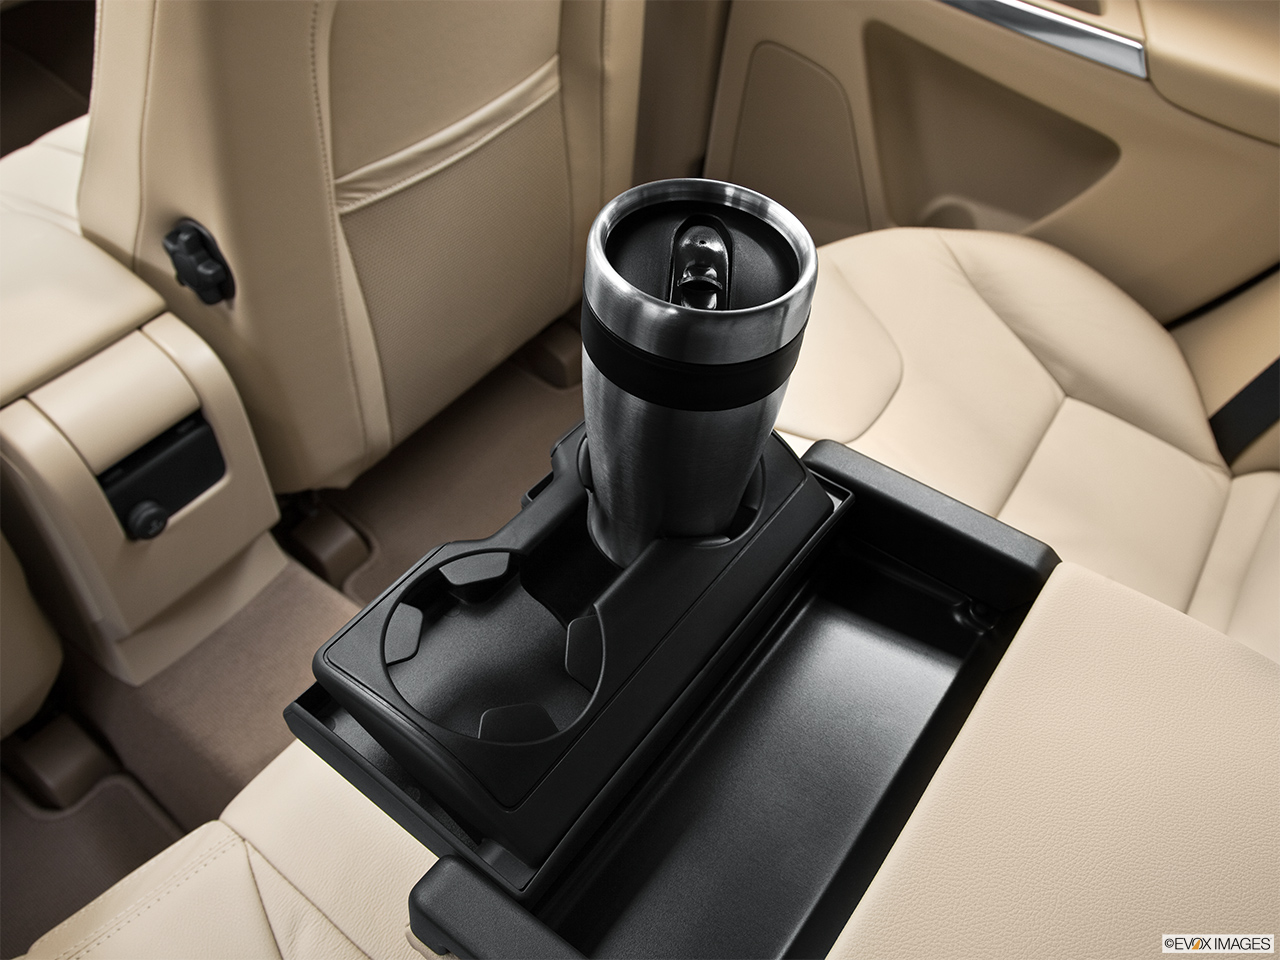 2013 Volvo XC60 3.2 FWD Premier Plus Third Row center cup holder with coffee prop.